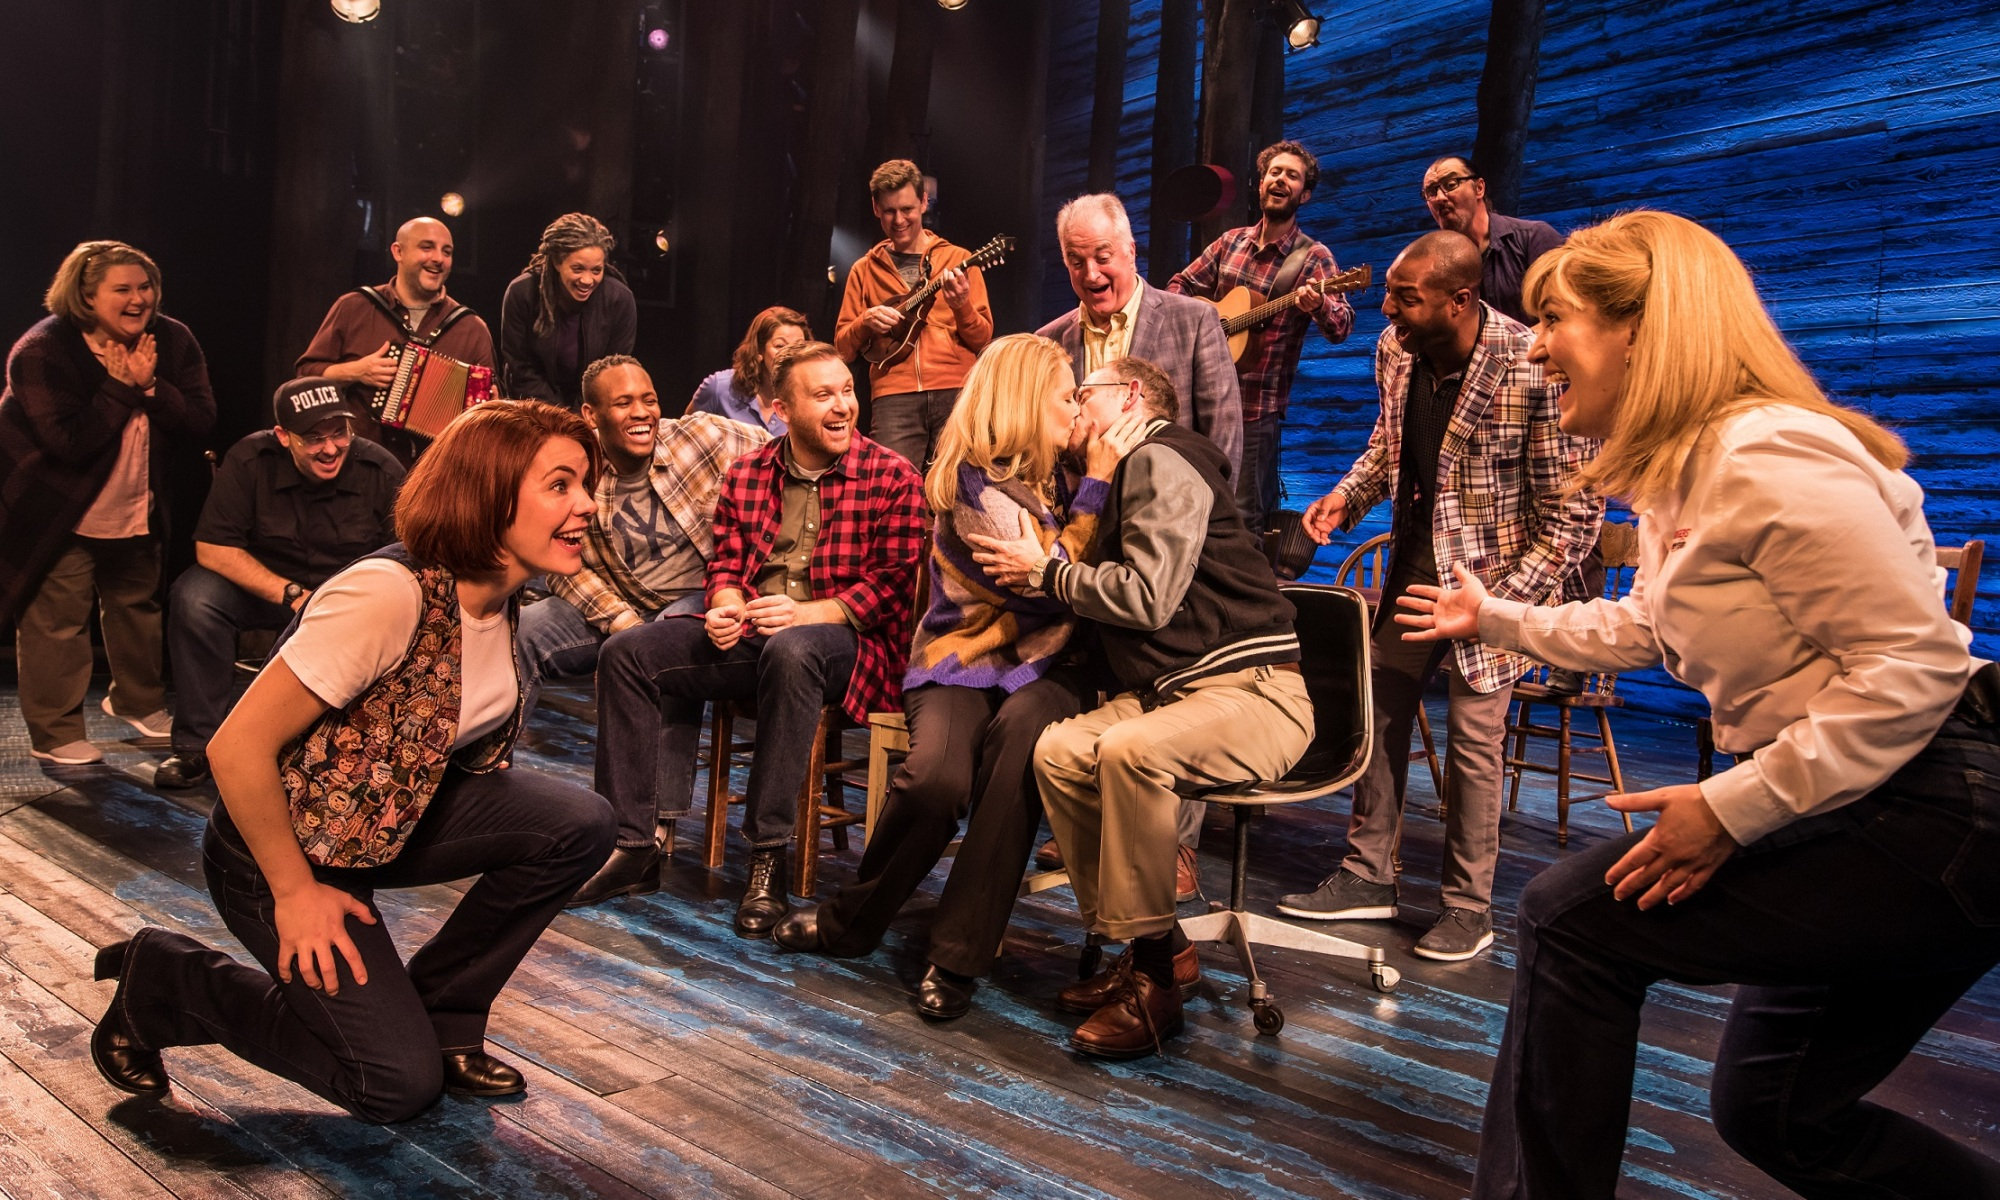 A group of friends gather around two people who are kissing each other, all of them with looks of happiness and surprise on their faces. A band is in the background. In the foreground, a woman is on one knee, smiling at another woman who leans forward on one knee, arms outstretched, smiling. They appear to be mid-dance.